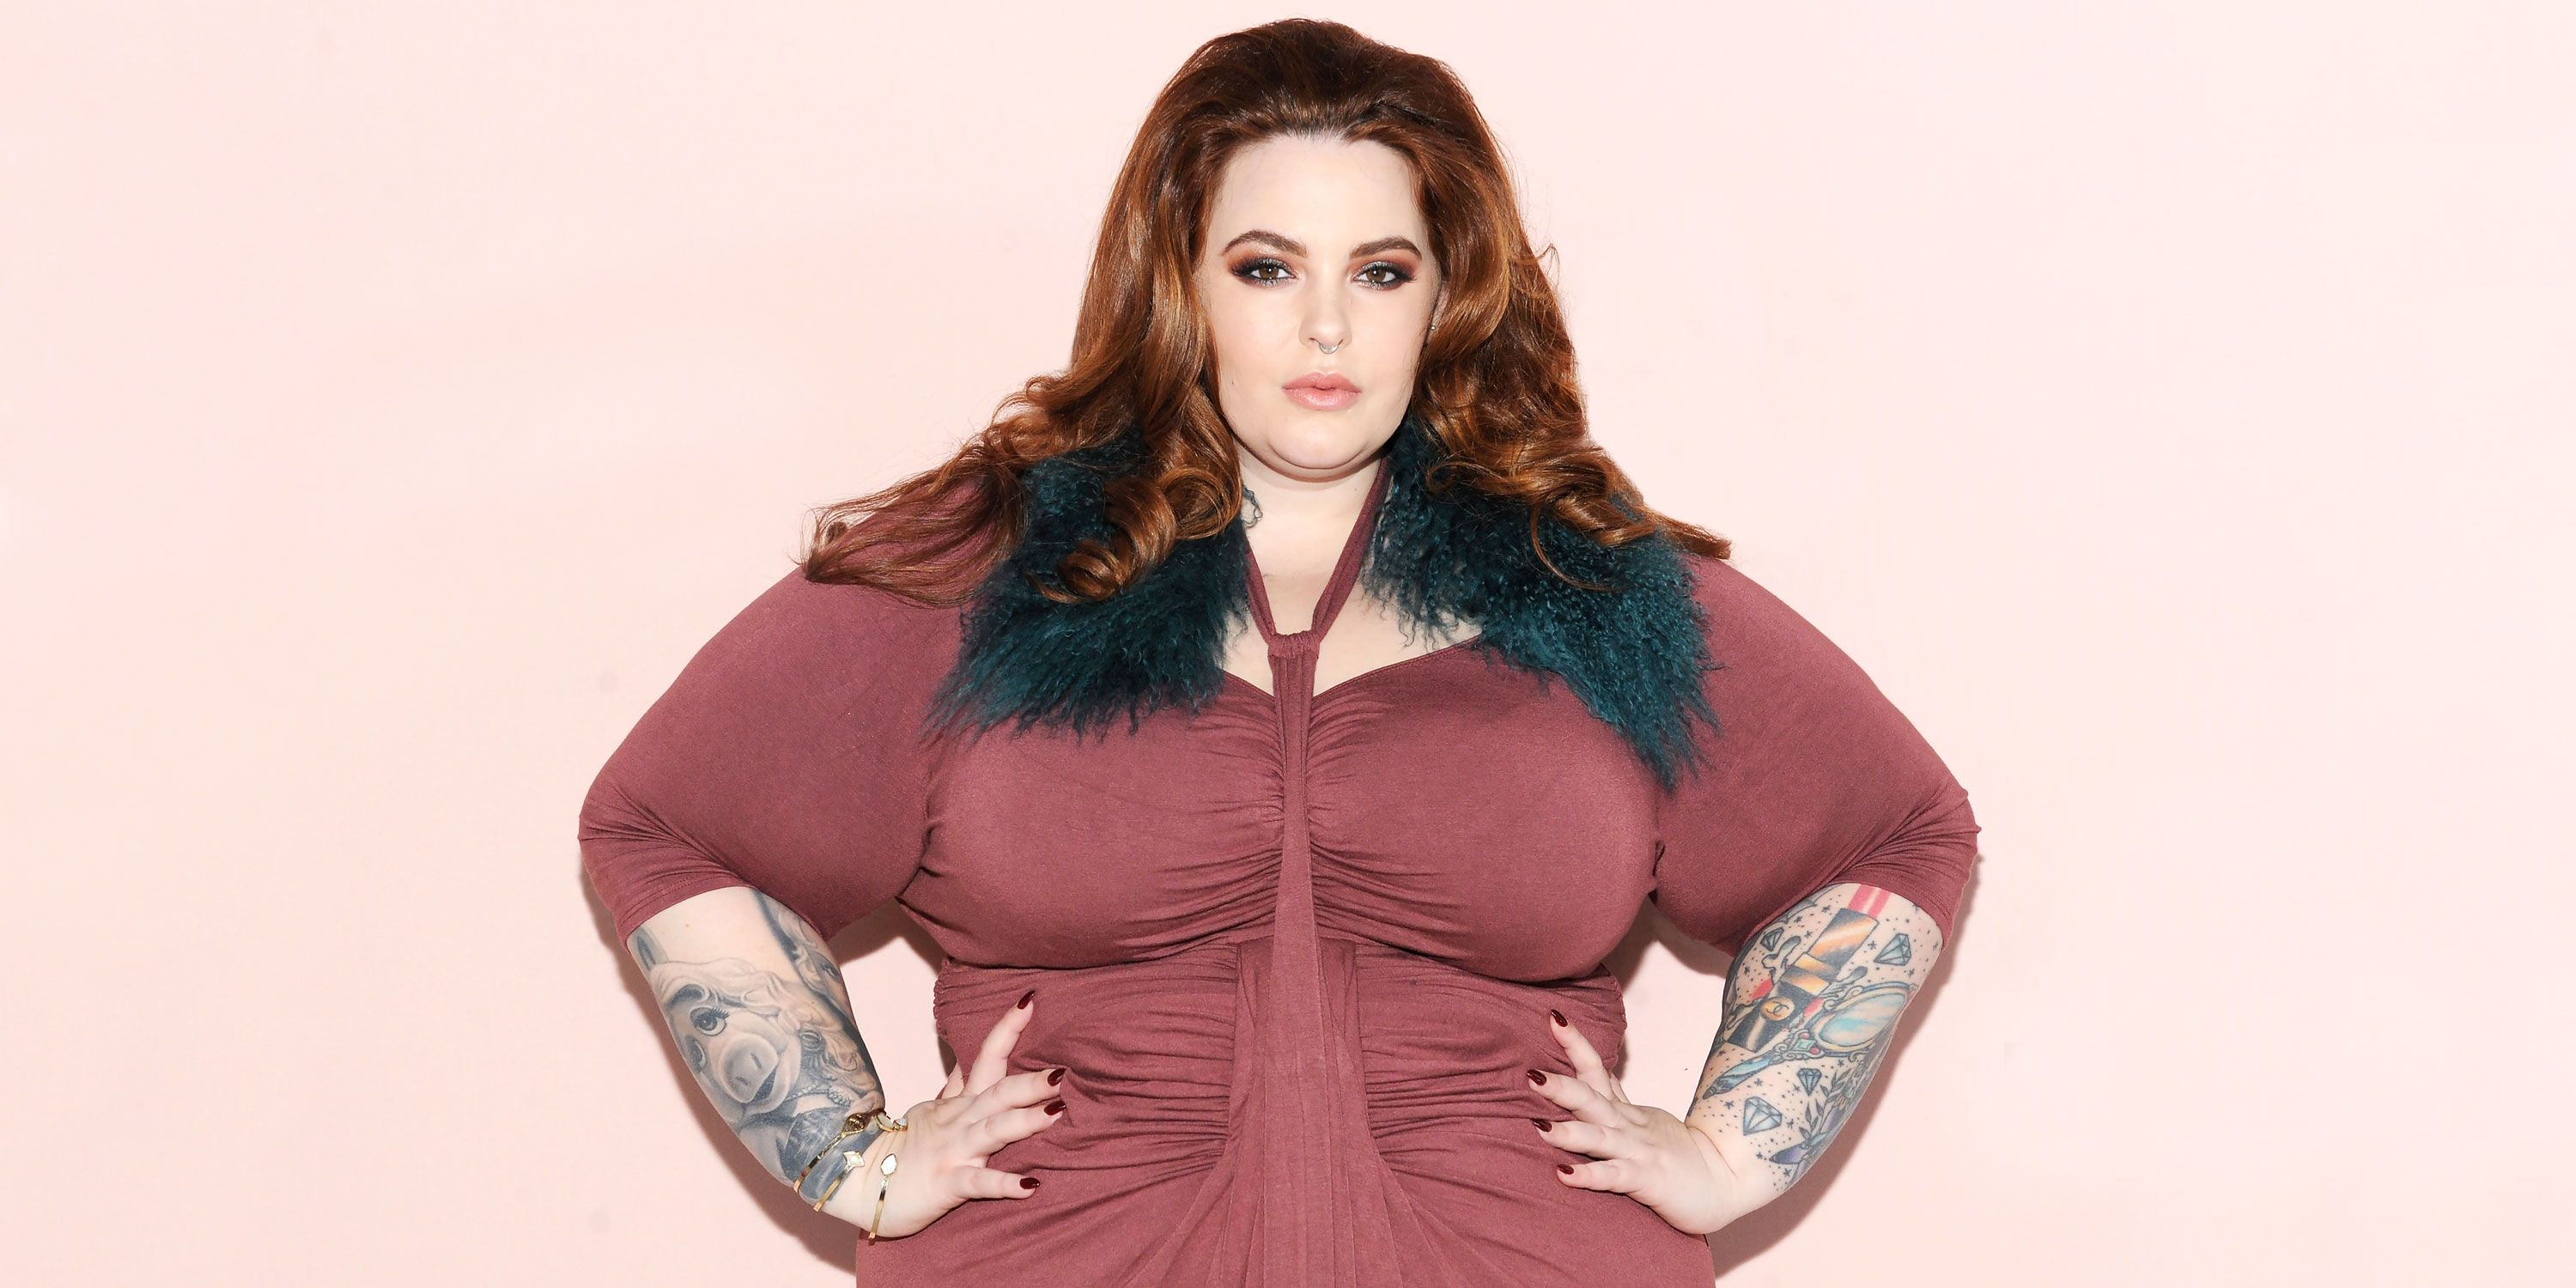 Ass ICloud Tess Holliday naked photo 2017